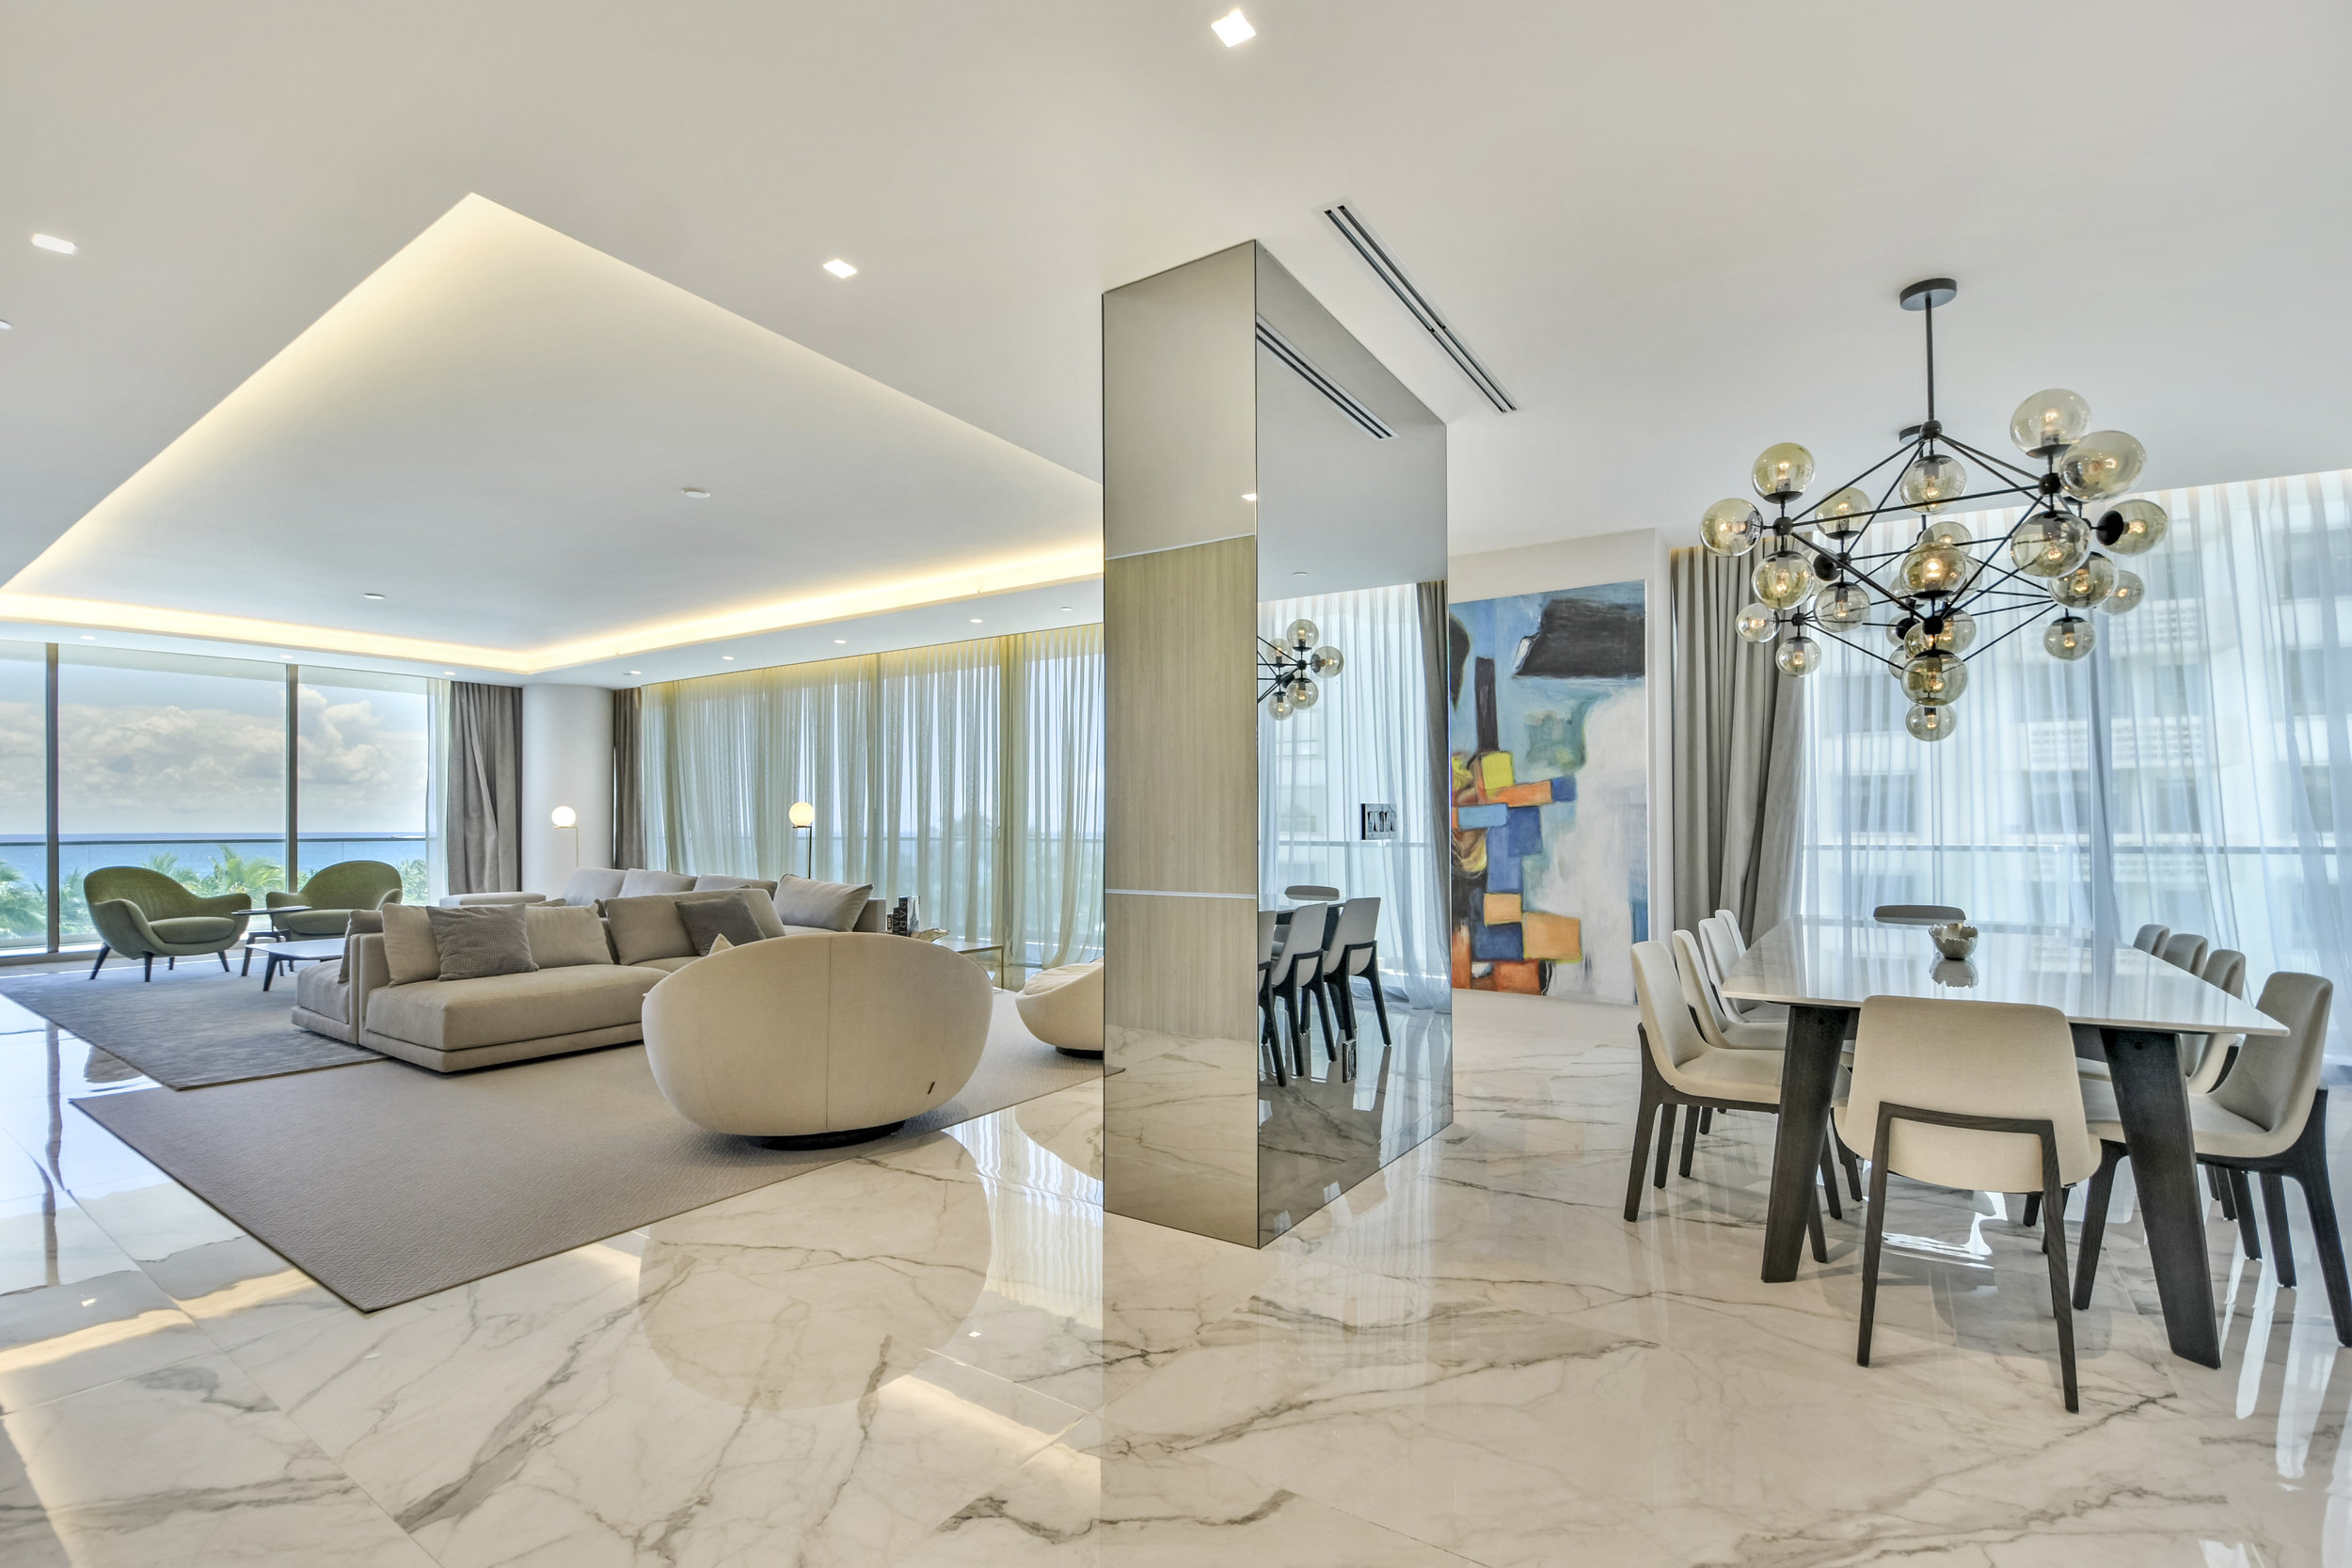 Check Out This Marble Masterpiece Condo In Oceana Bal Harbour Asking $8.49 Million